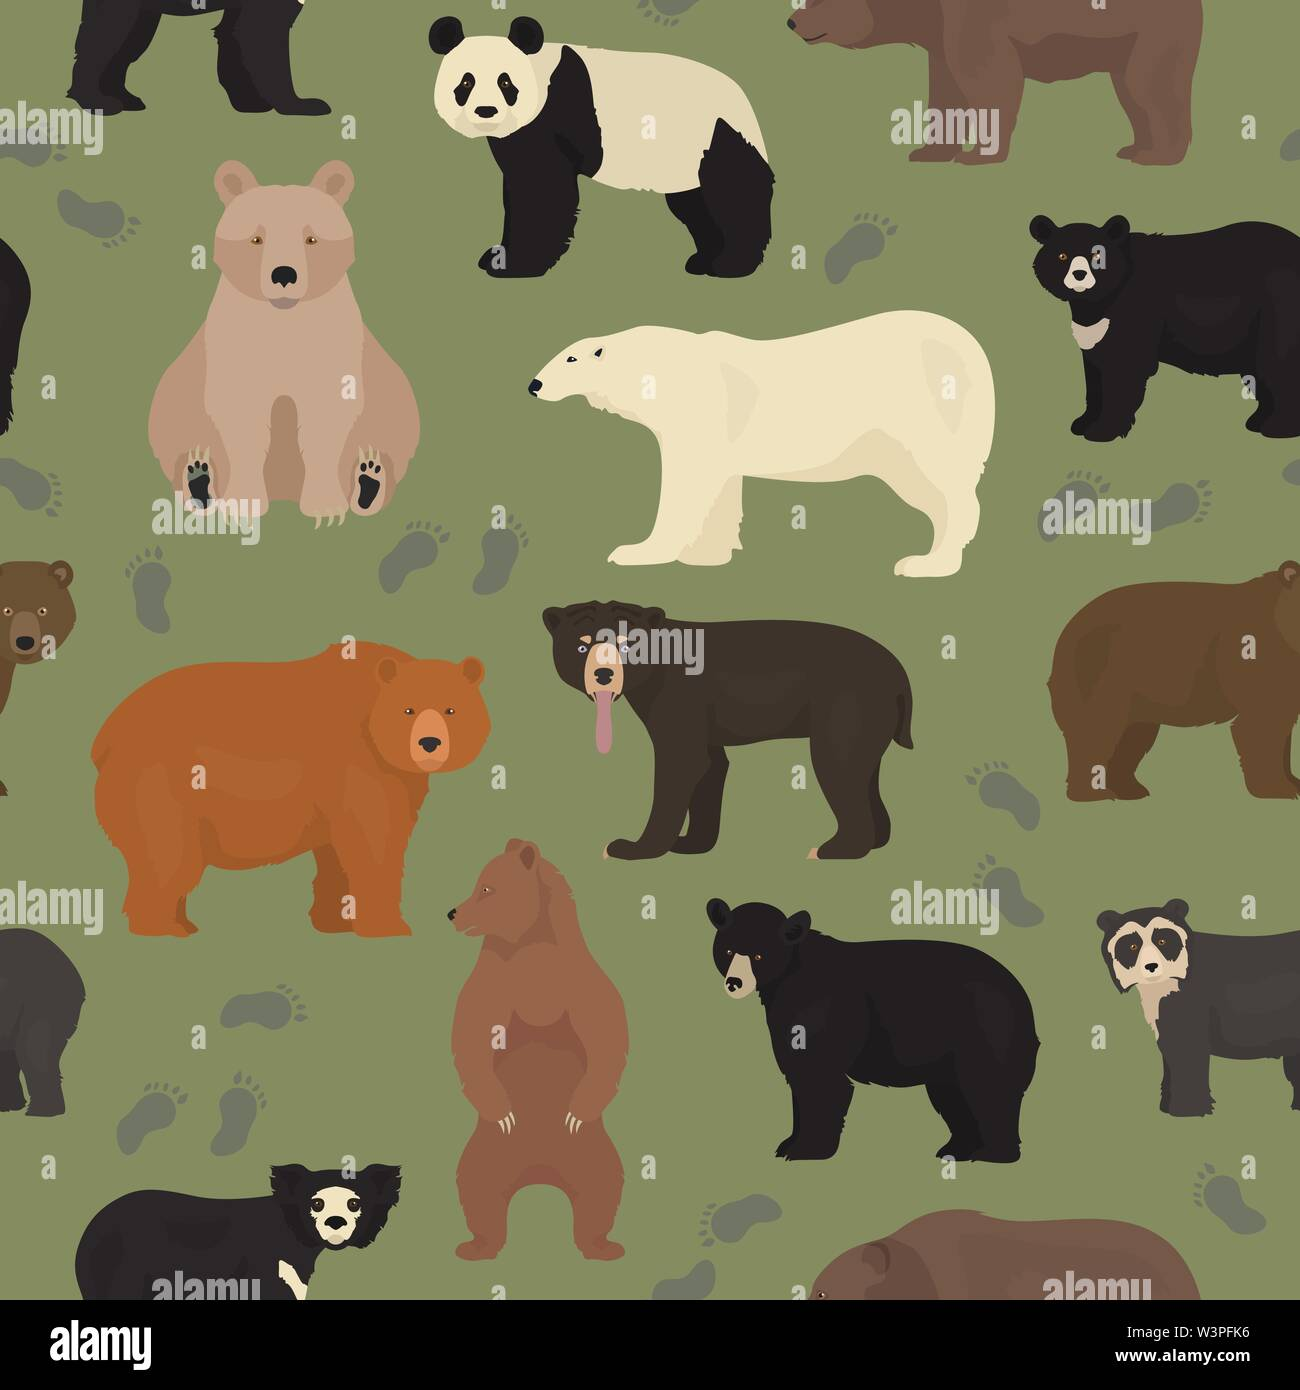 All world bear species in one set. Bears seamless pattern. Vector illustration - Stock Image